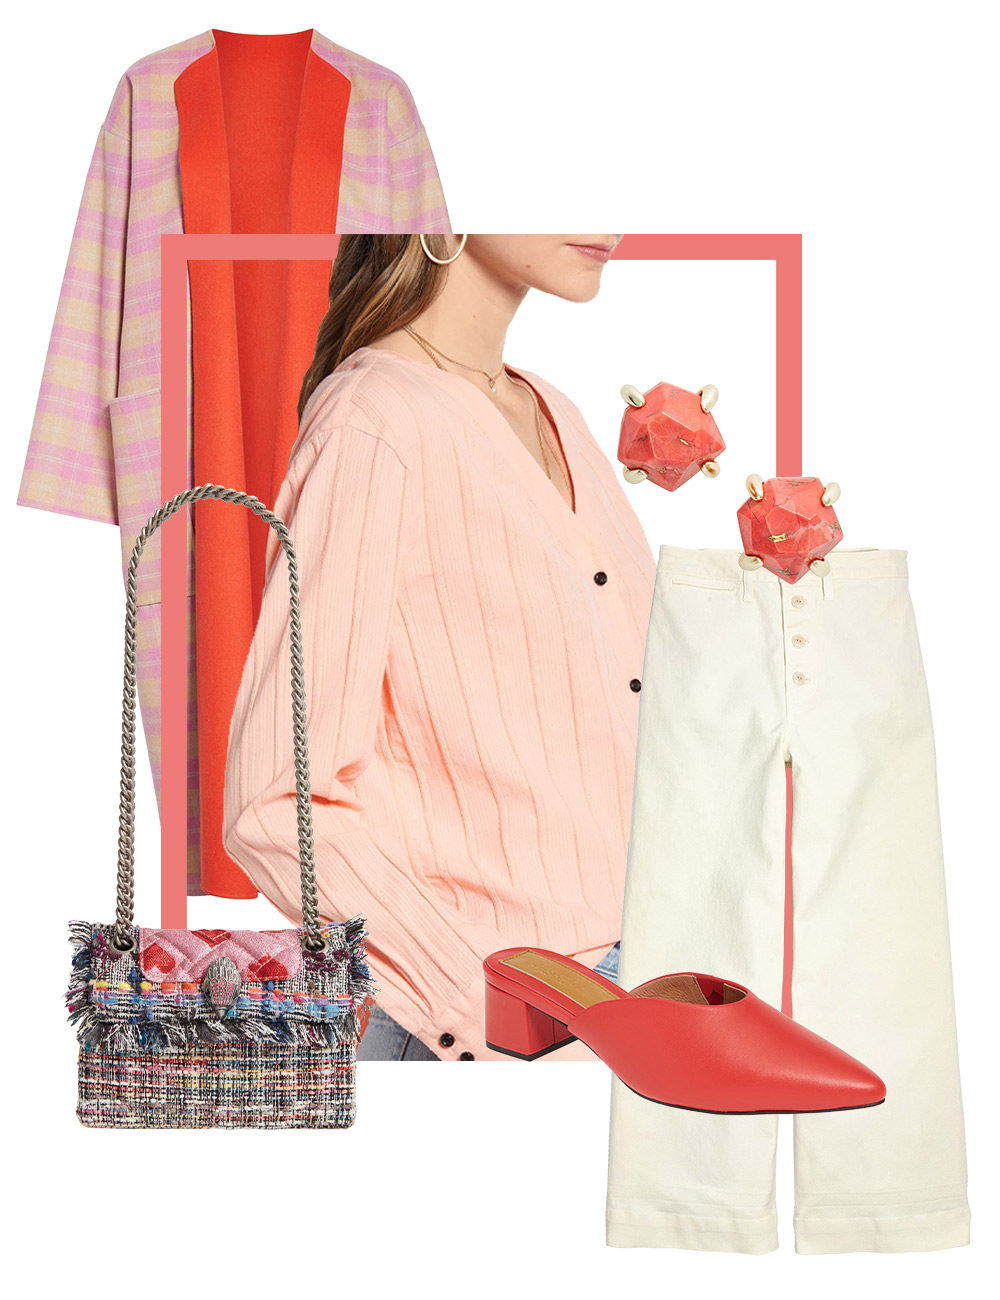 Women's statement coat outfit collage